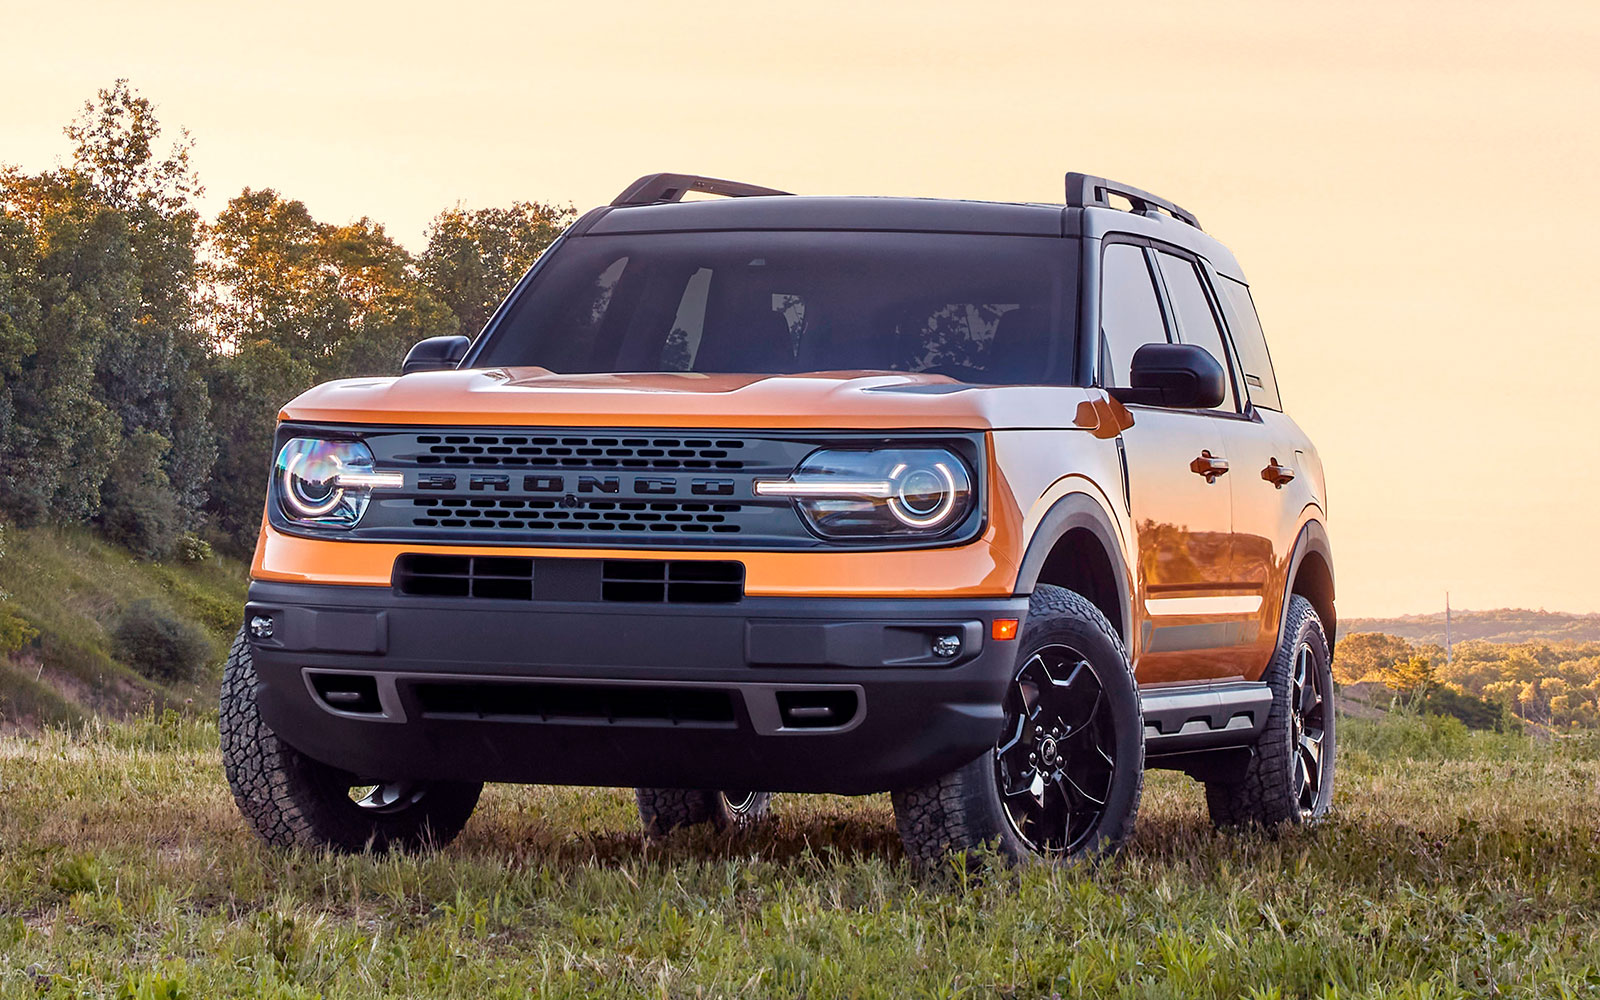 As you probably know, Ford intends to establish a whole sub-brand named Bronco and release a wide range of vehicles under that badge. Recent evidence suggests this could include an all-electric SUV or two.